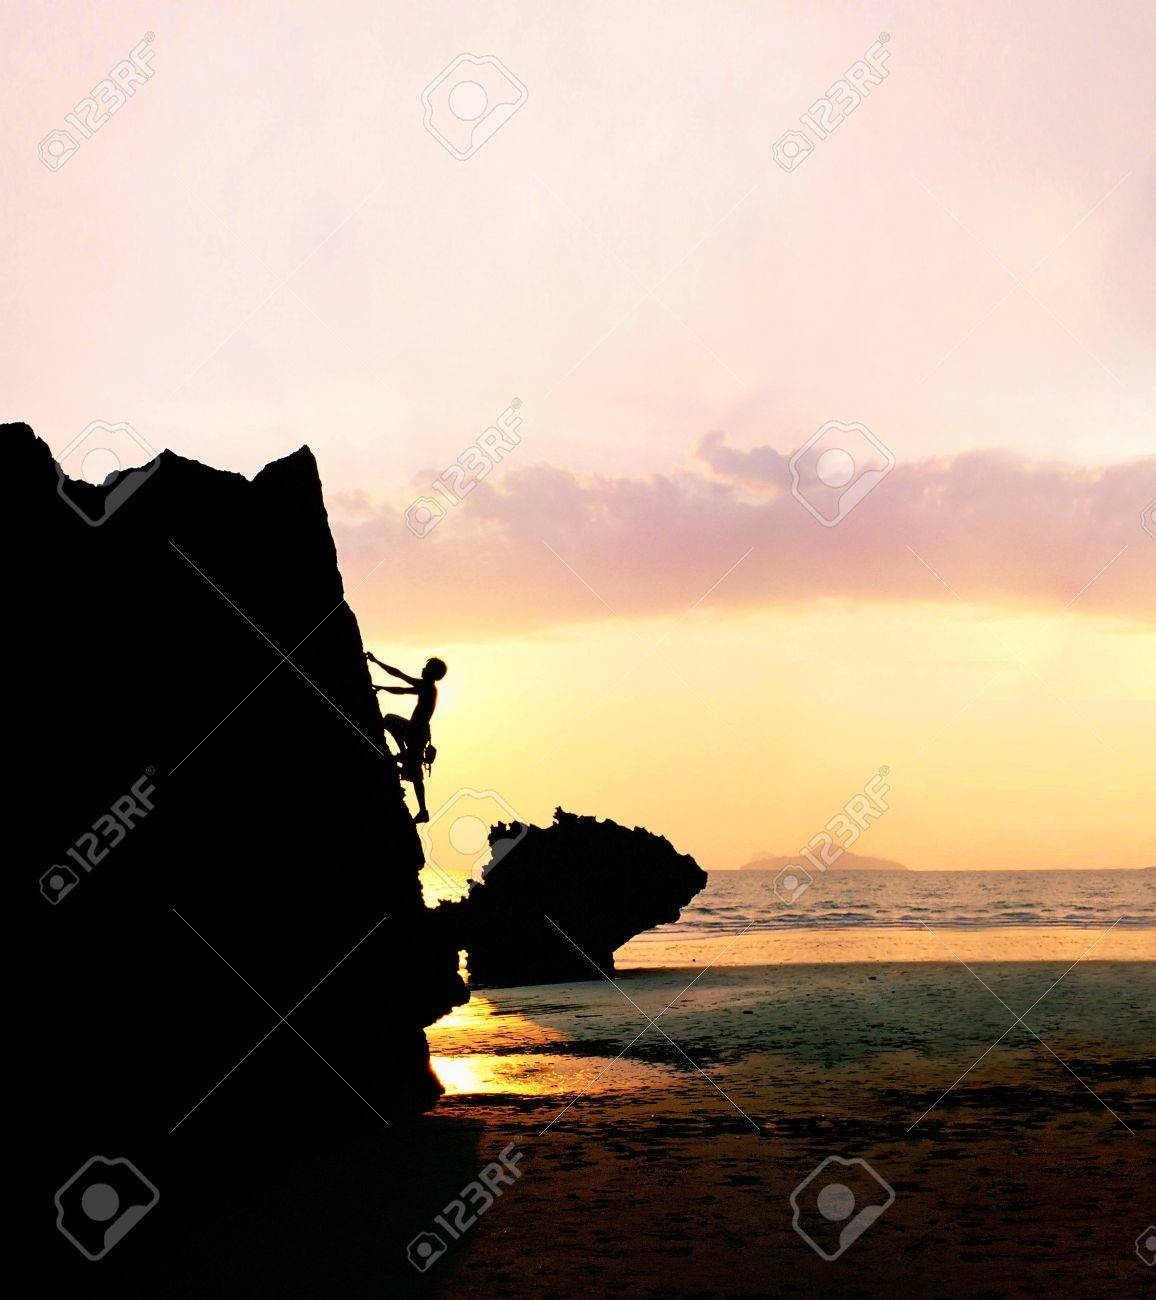 Silhouette of a man rock-climbing at sunset. - 8863131